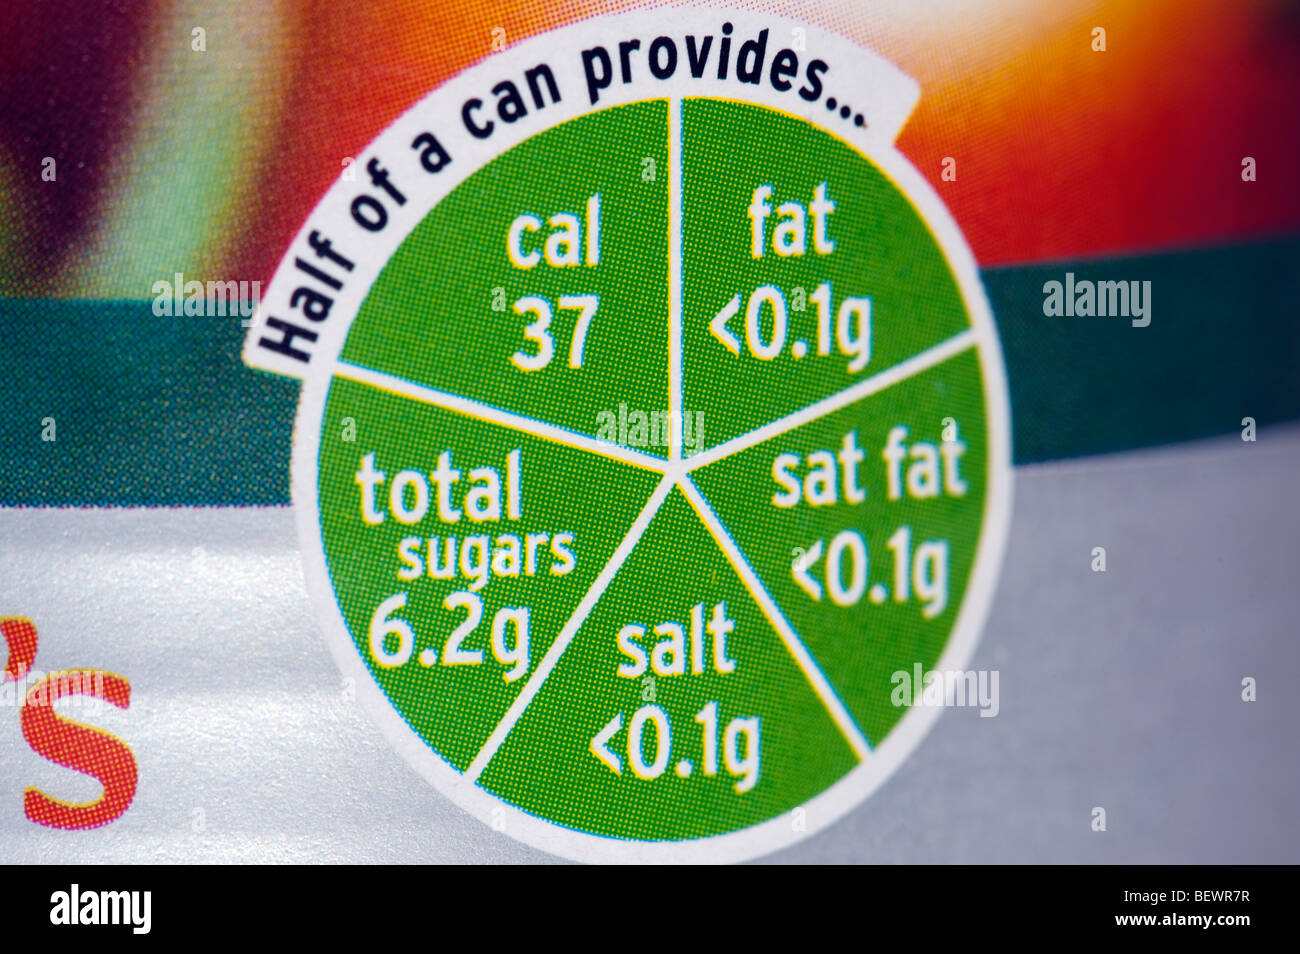 Nutritional information on a can of tomatoes - Stock Image